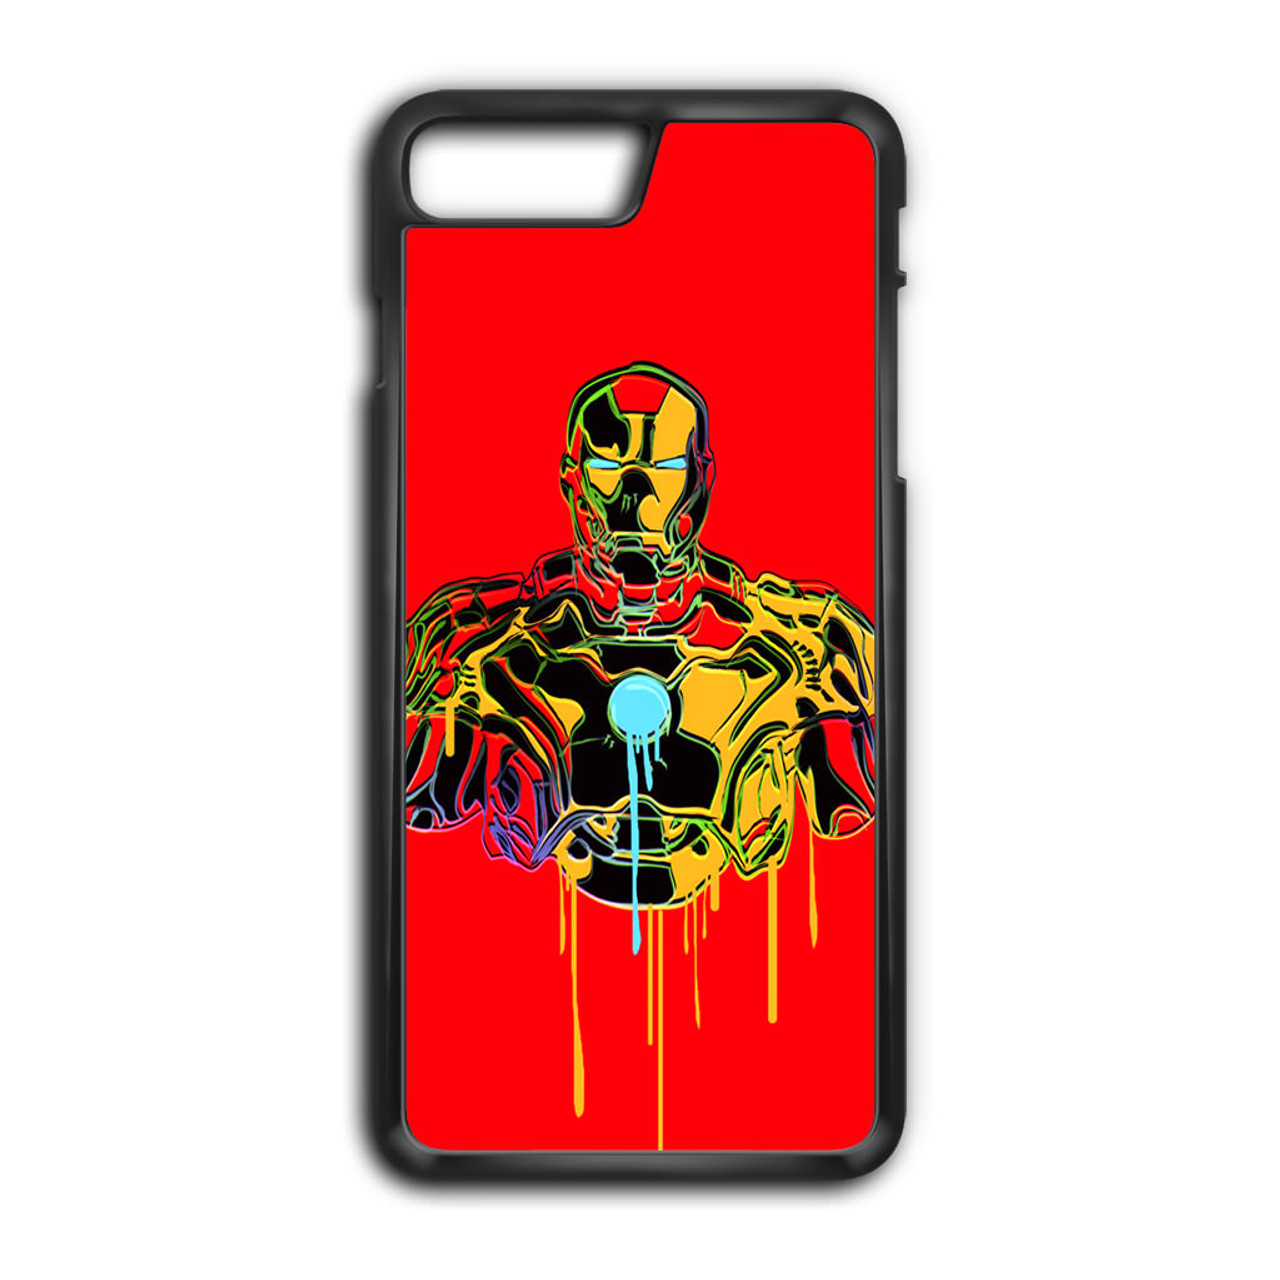 iphone 7 man case